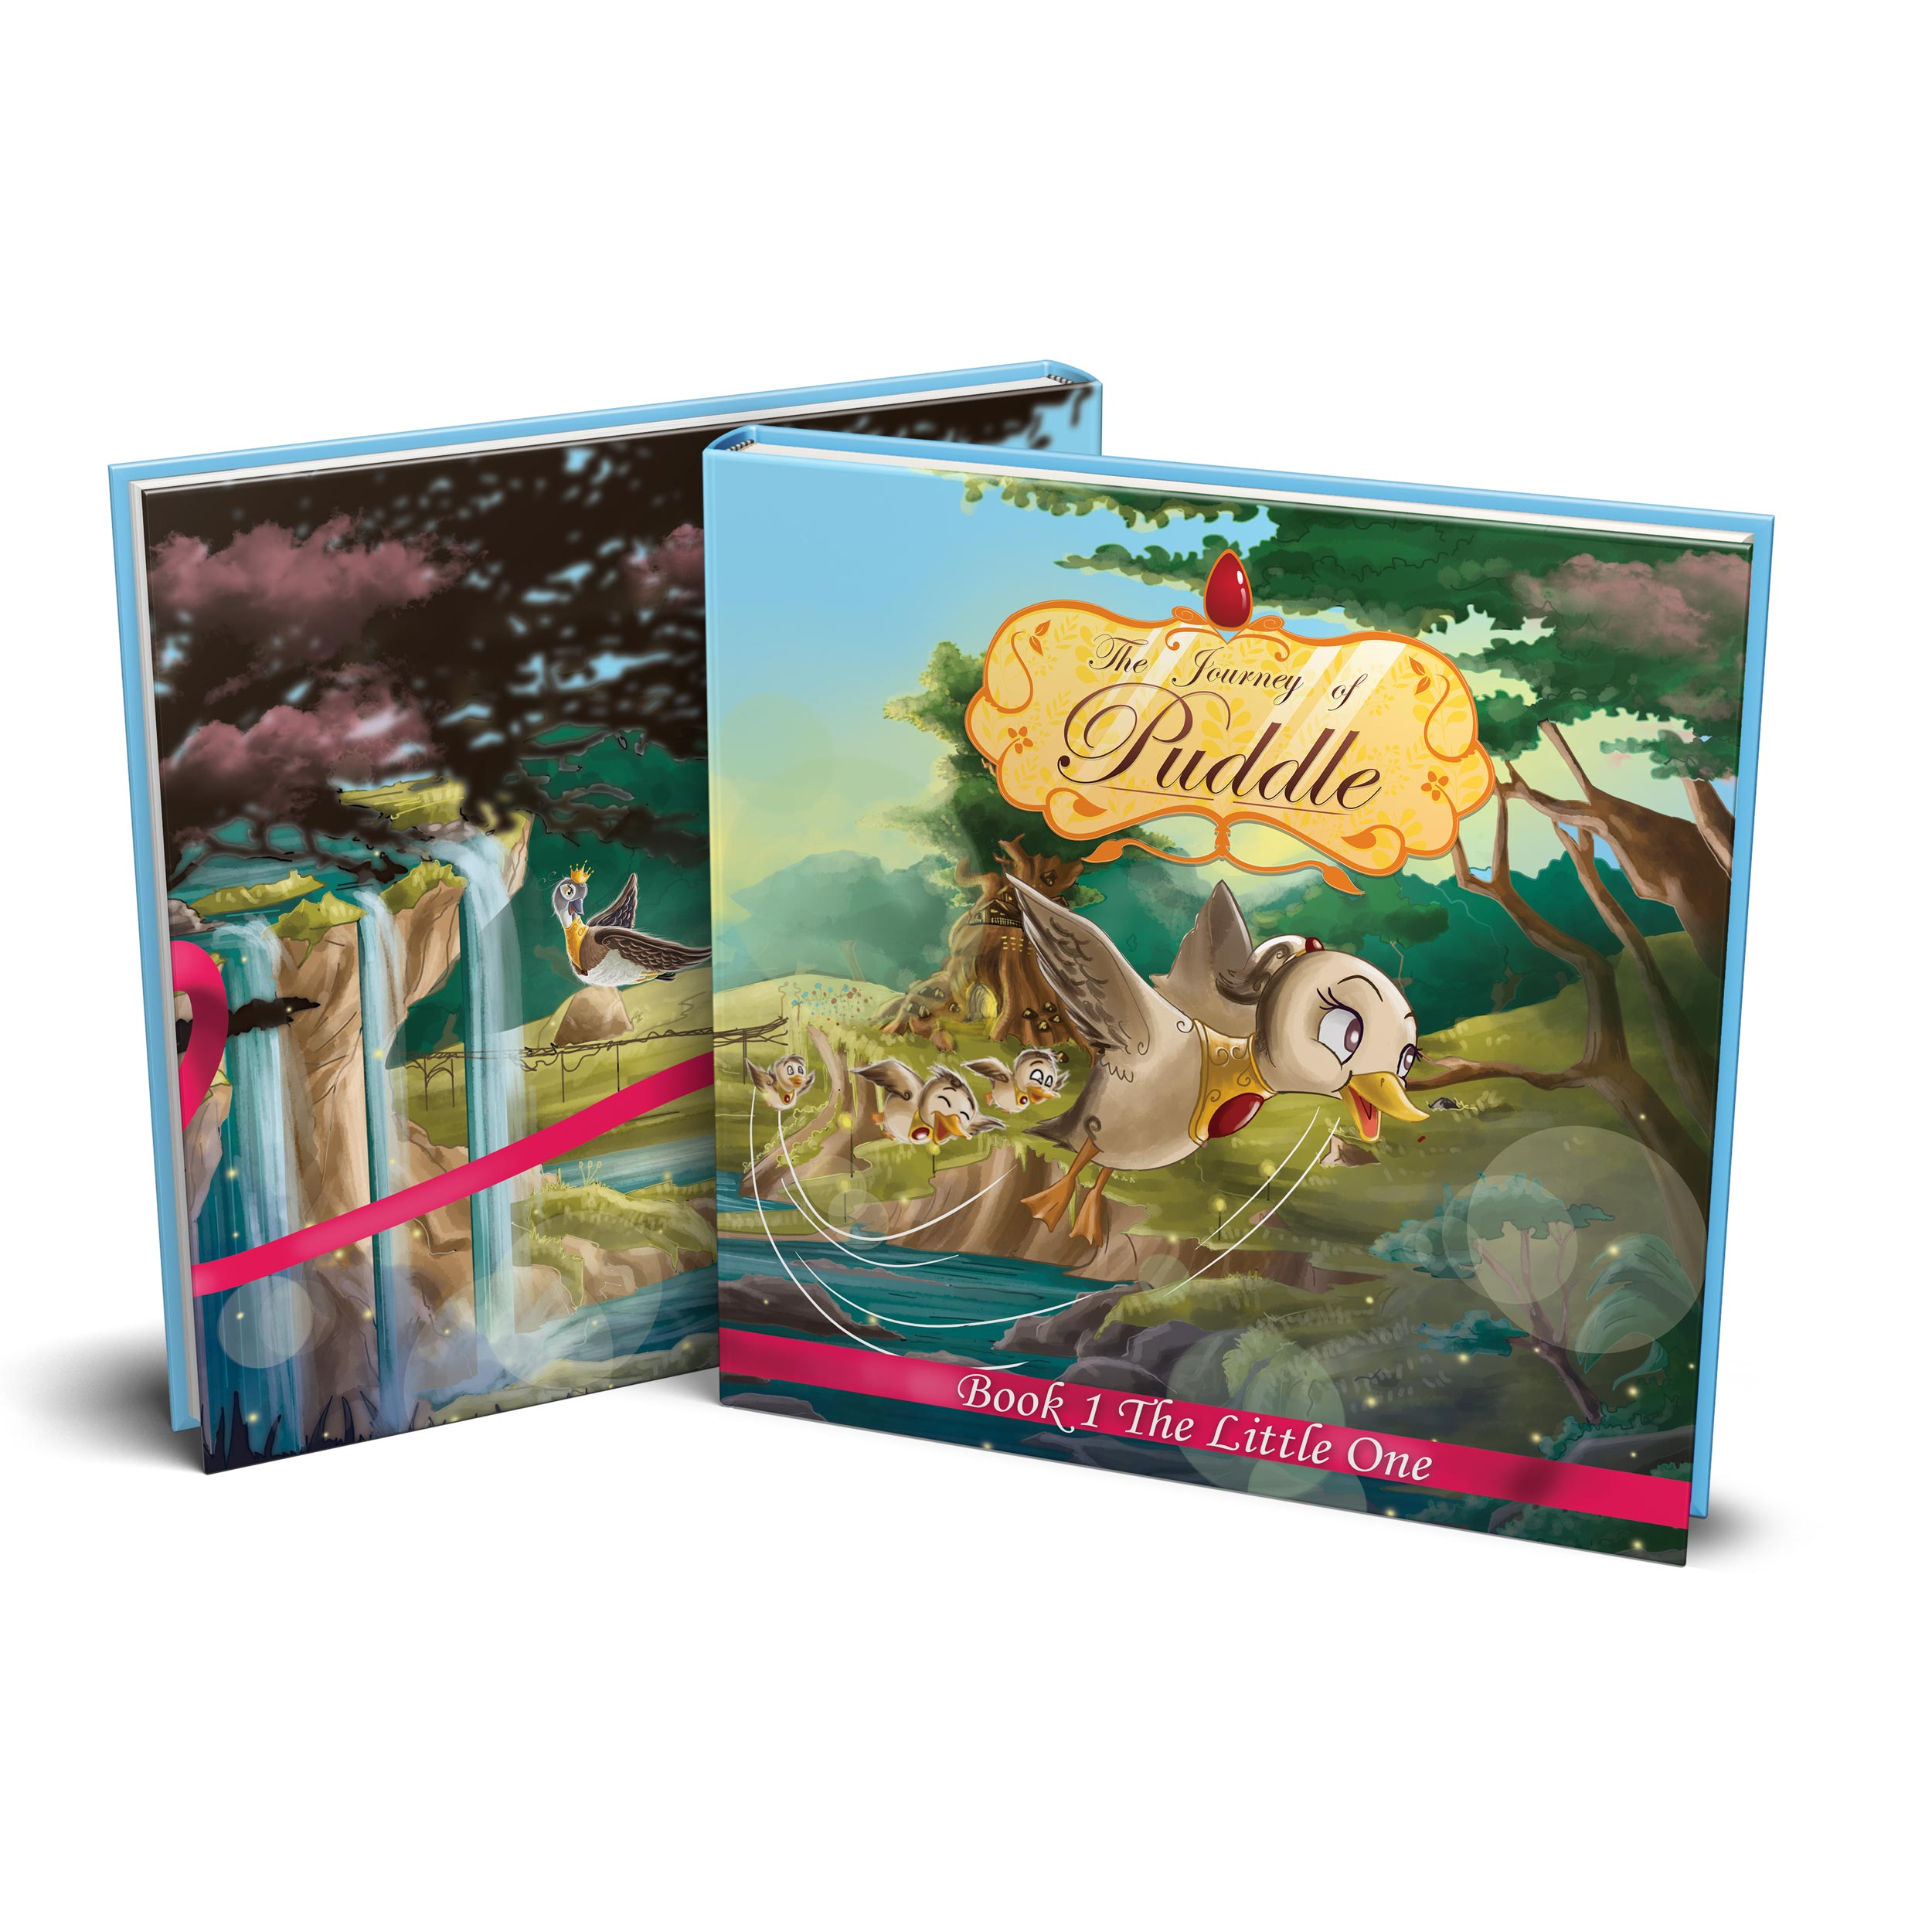 Book 1: The Little One - Puddle's extraordinary journey begins in her small home of Duckville near the edge of the Land of Creation. Puddle lives an ordinary life where her parents, King Rupert and Queen Sarafine, guide Puddle during her younger years. Her curious nature ignites a series of events that will lead to the discovery of her special gift of flight, a plot by Virus to take over the kingdom, and open up a world where her story is bound to everyone around her.How will Puddle's faith guide her through her discovery?What will Puddle do with her newfound gift?